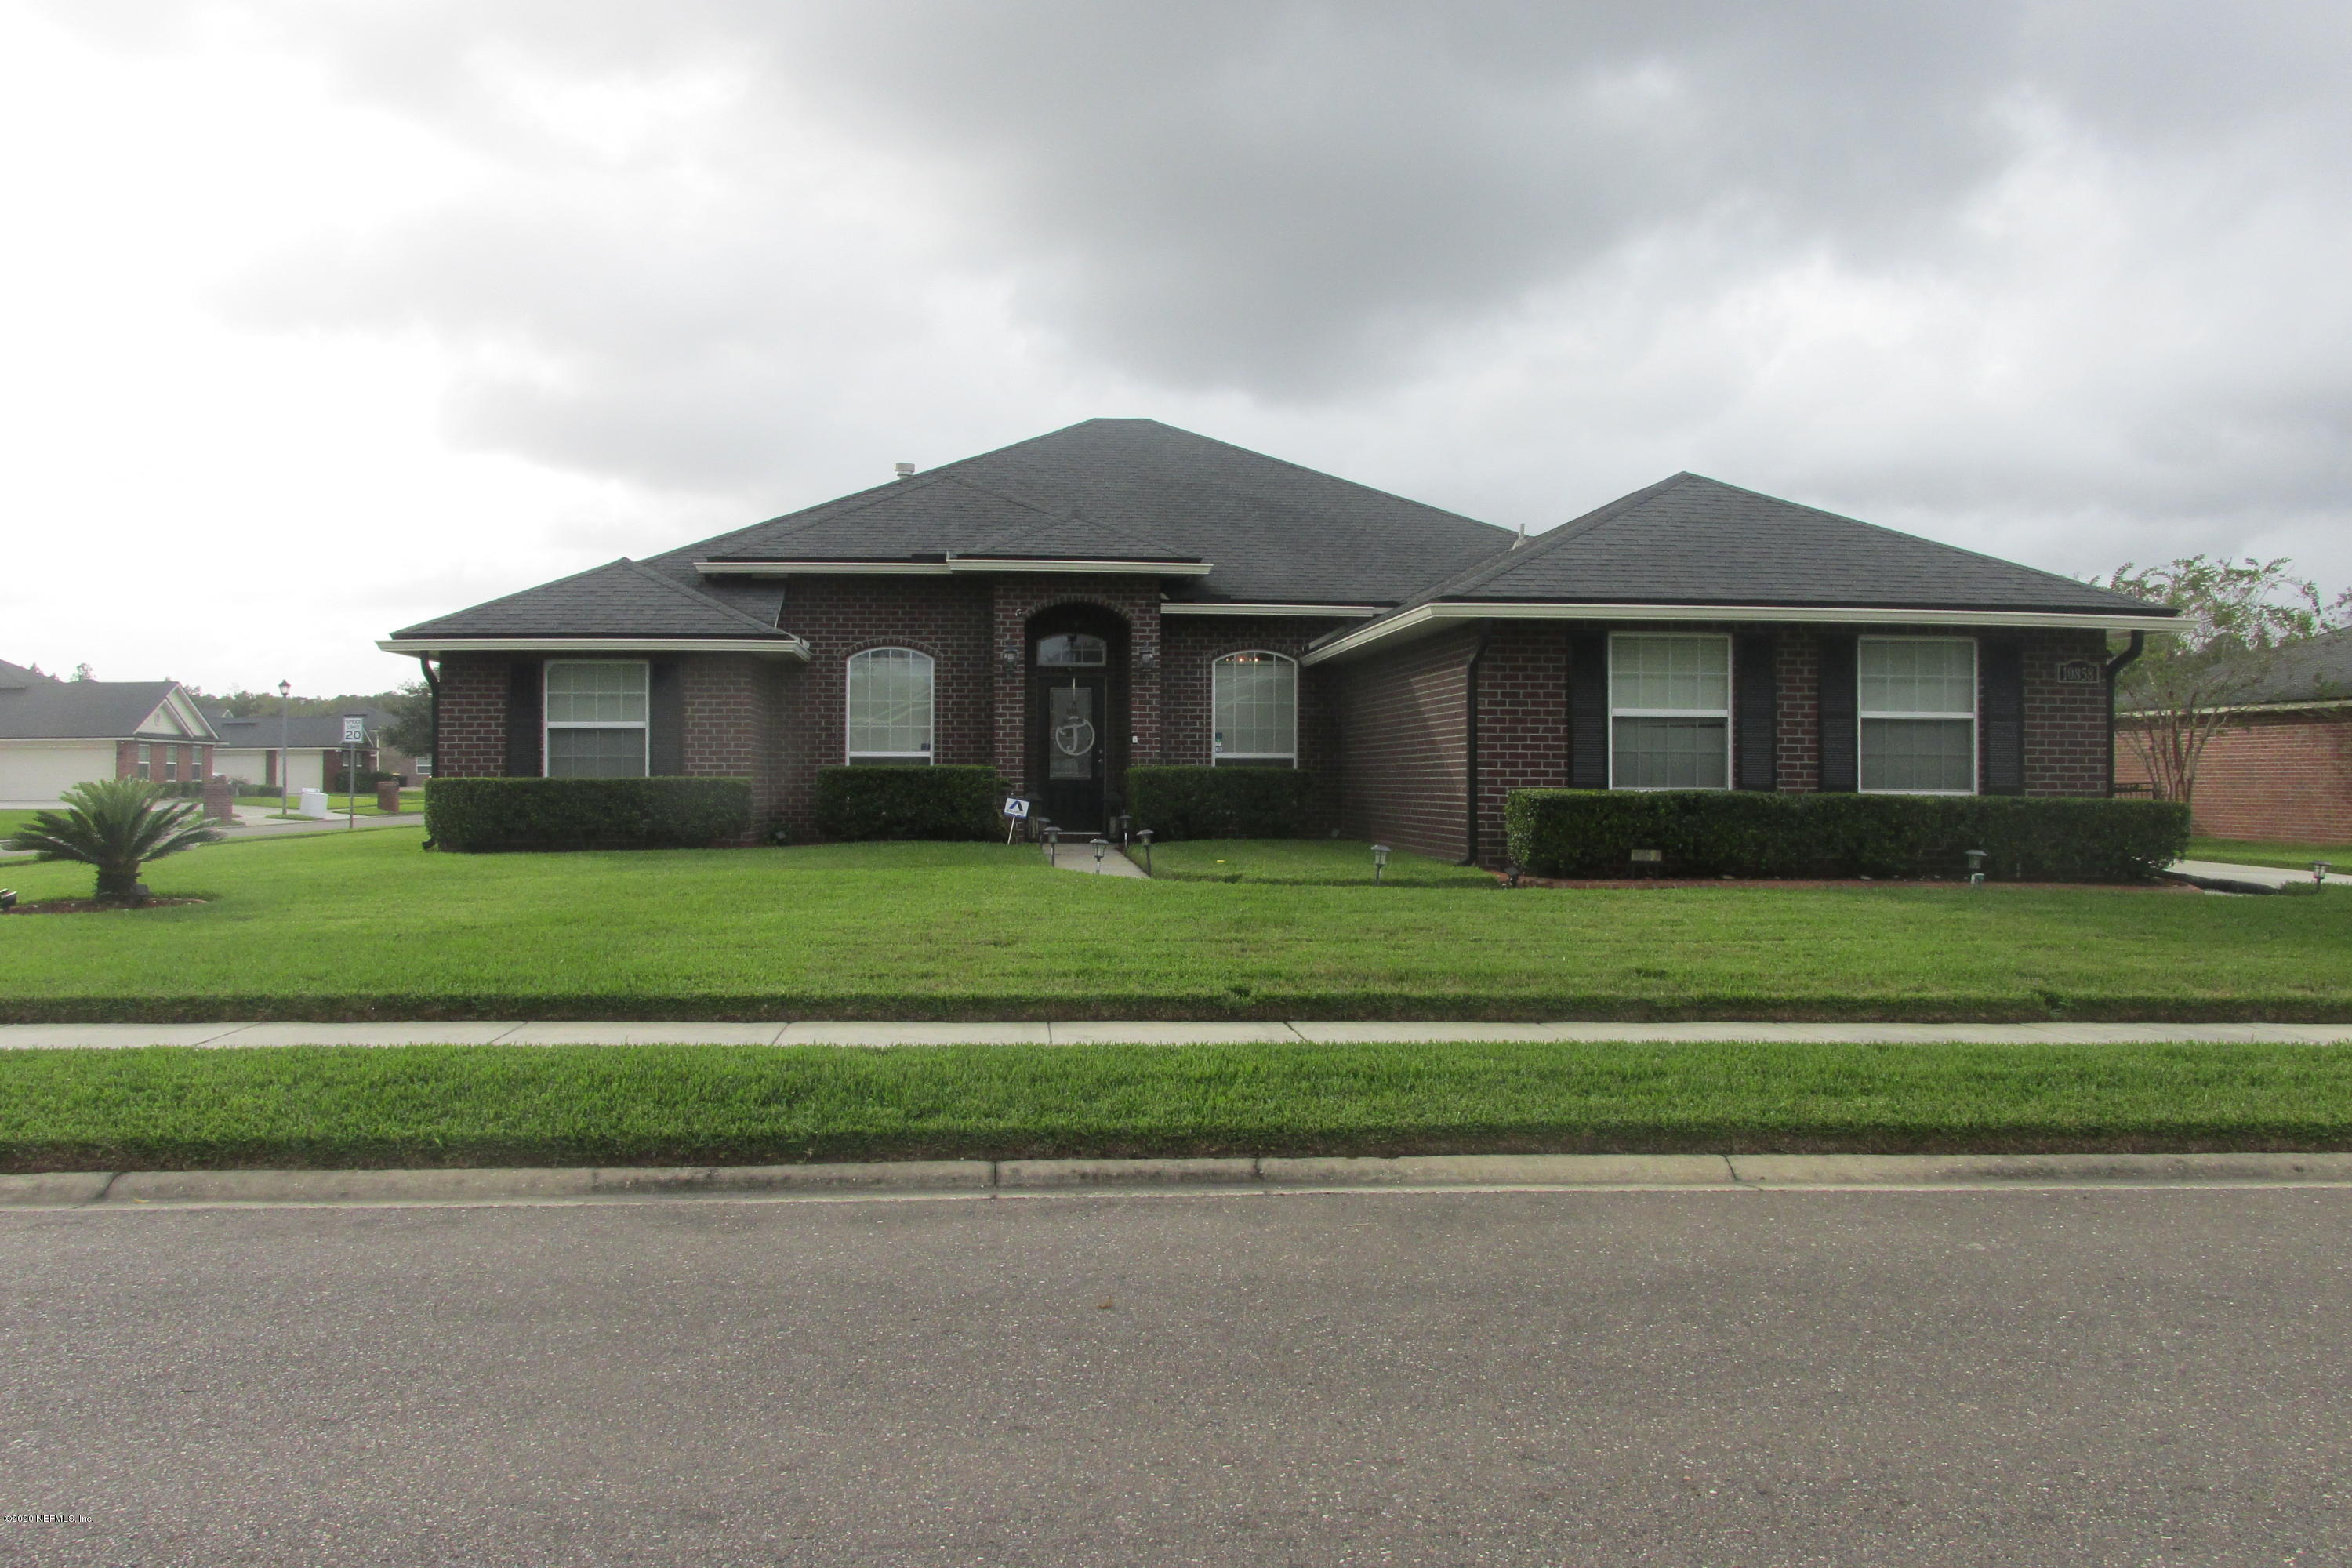 10858 DUNNOTAR, JACKSONVILLE, FLORIDA 32221, 4 Bedrooms Bedrooms, ,3 BathroomsBathrooms,Residential,For sale,DUNNOTAR,1082091